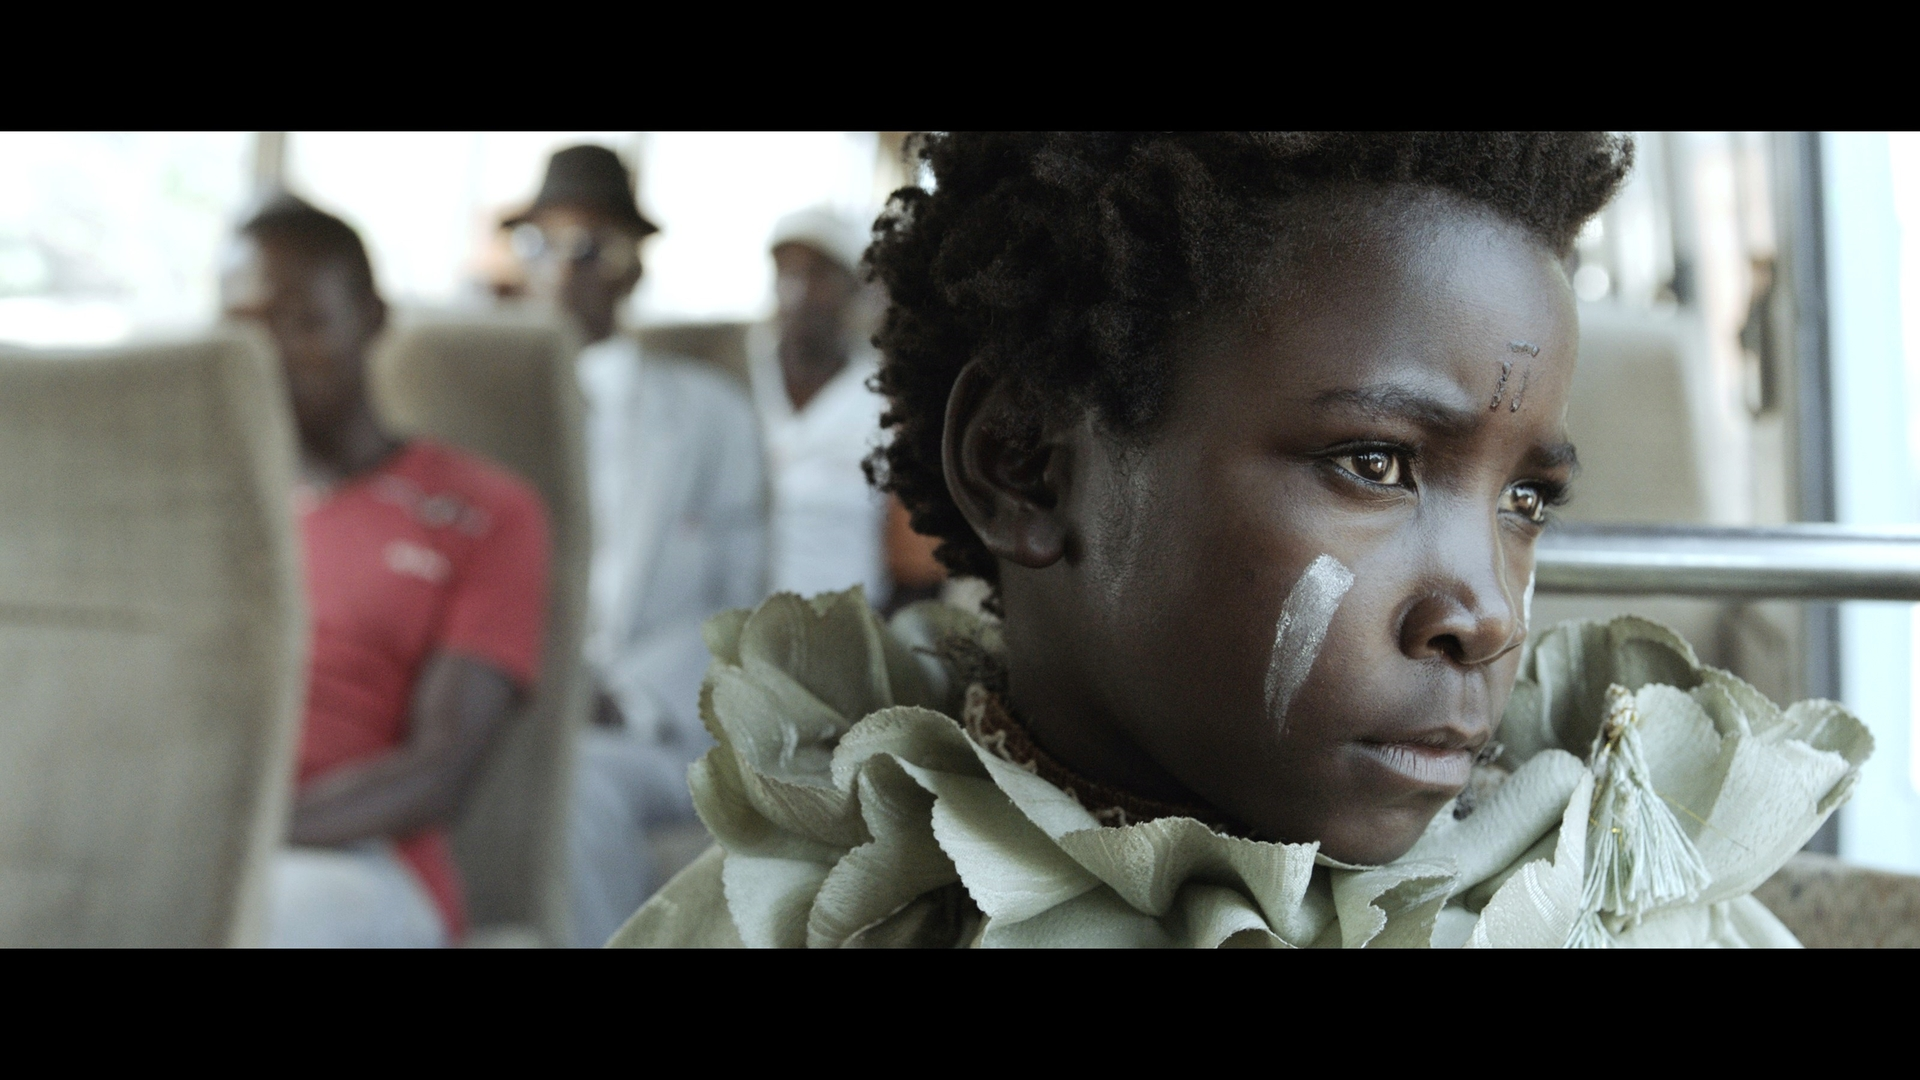 FCAAAL, a opportunity to see the recent Award Winning Films